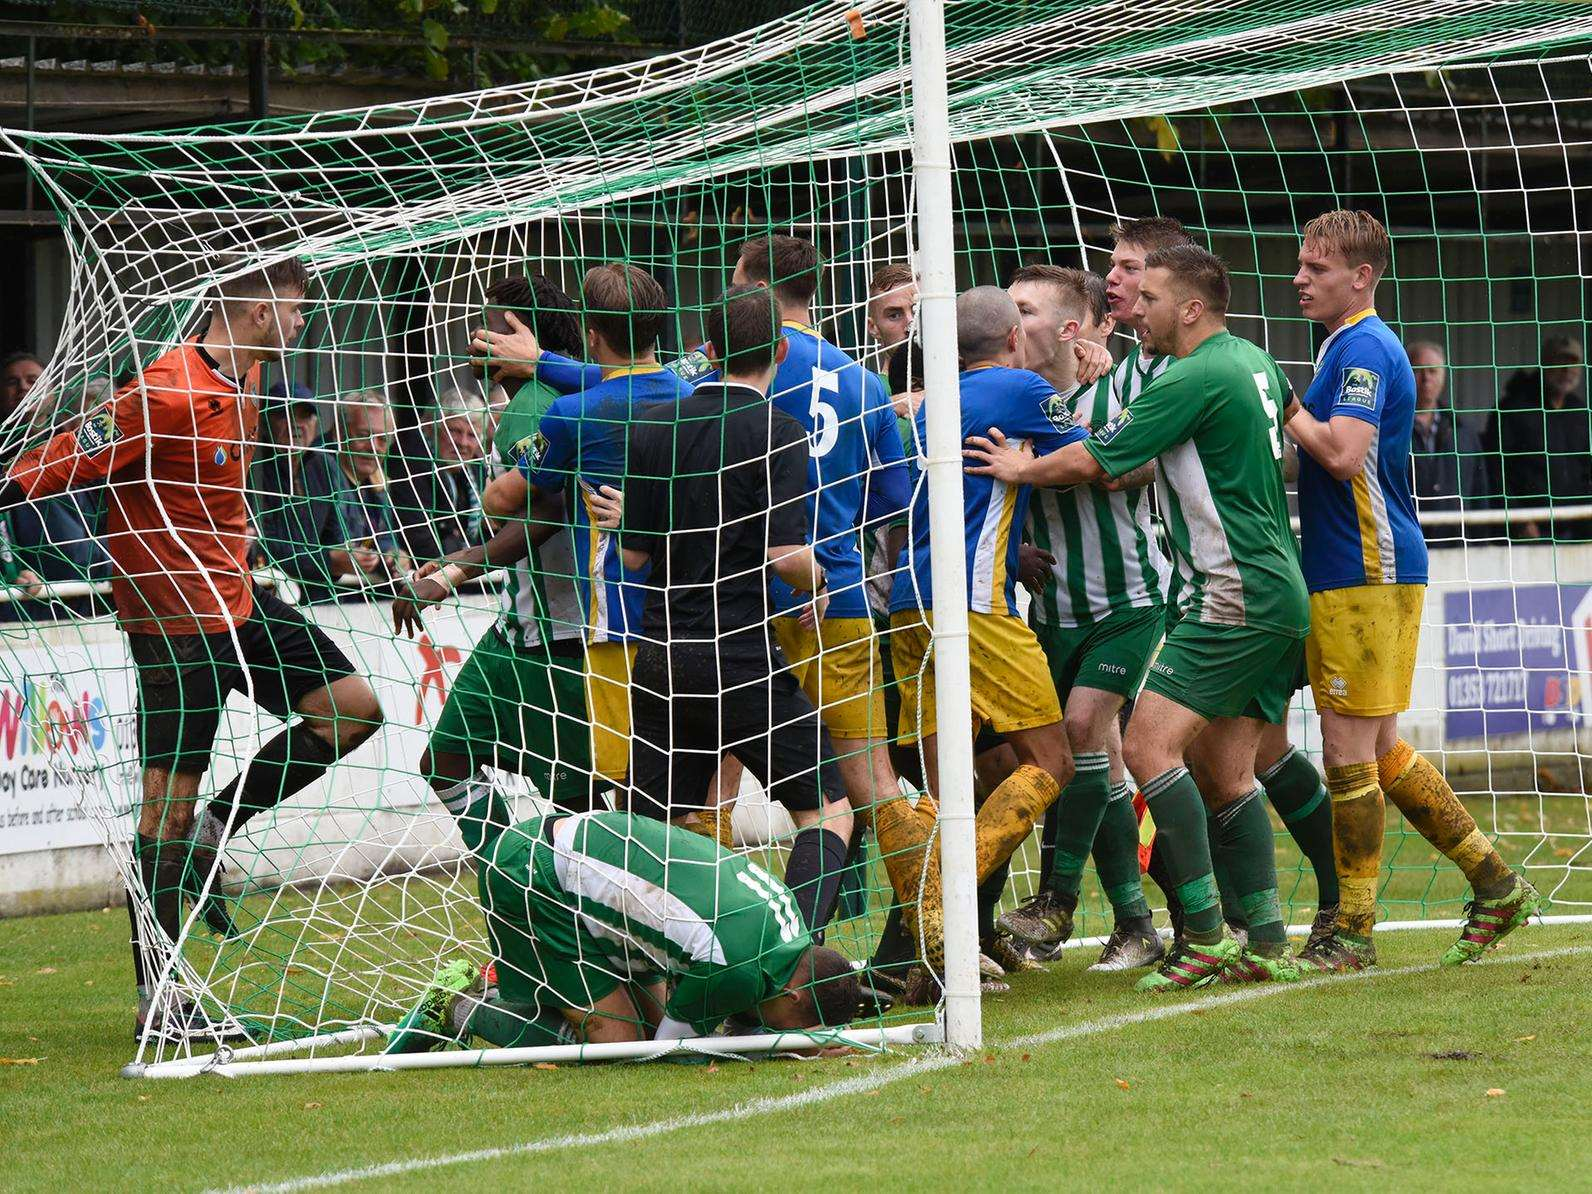 Things turn nasty at Soham Town Rangers where Canvey Island's goalkeeper was sent off, with The Greens scoring from the penalty spot Picture: Mark Westley